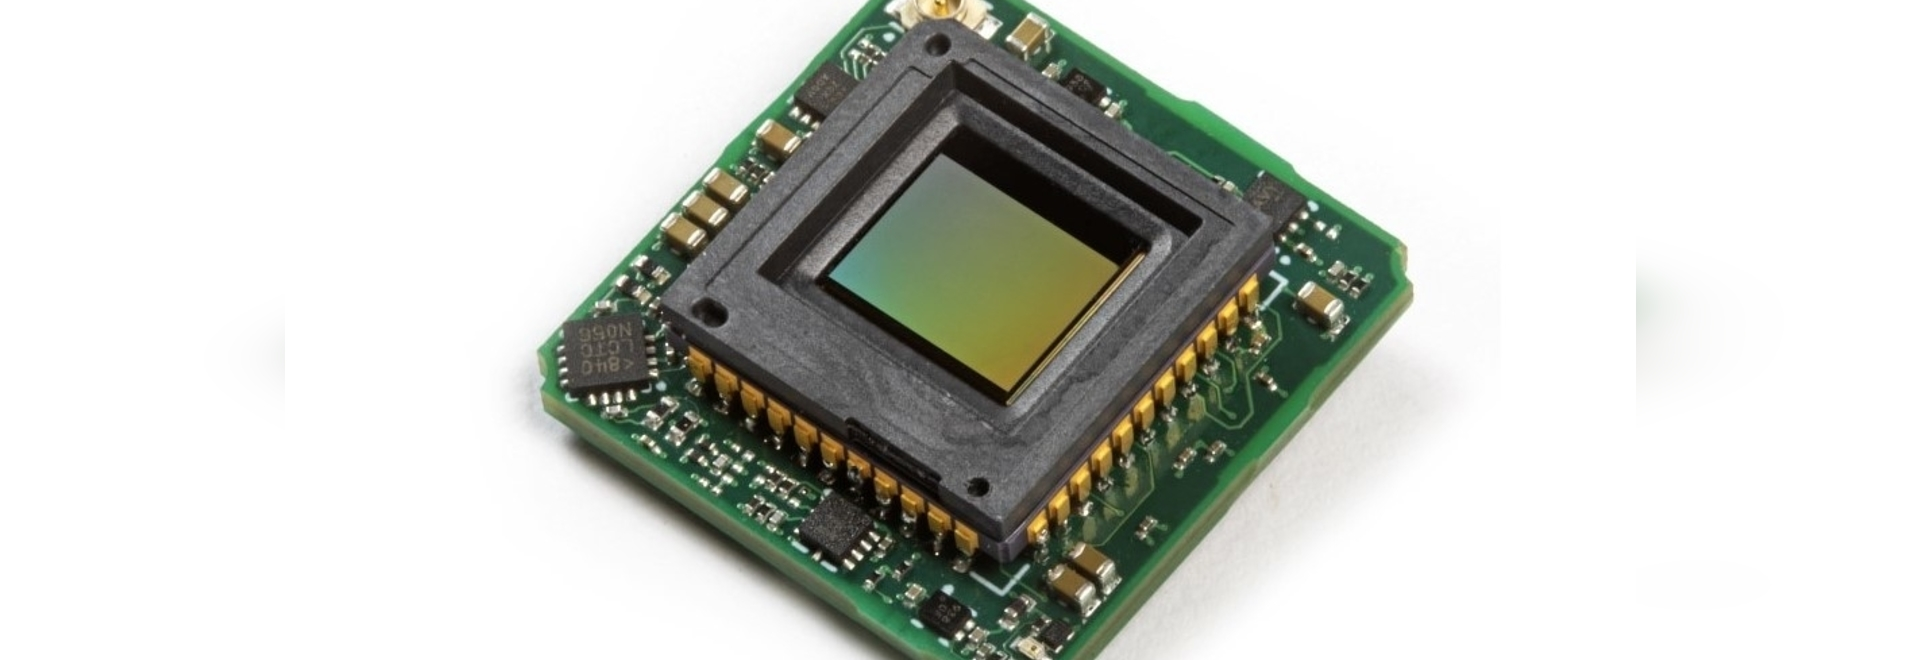 New Dione 640 Series camera cores released